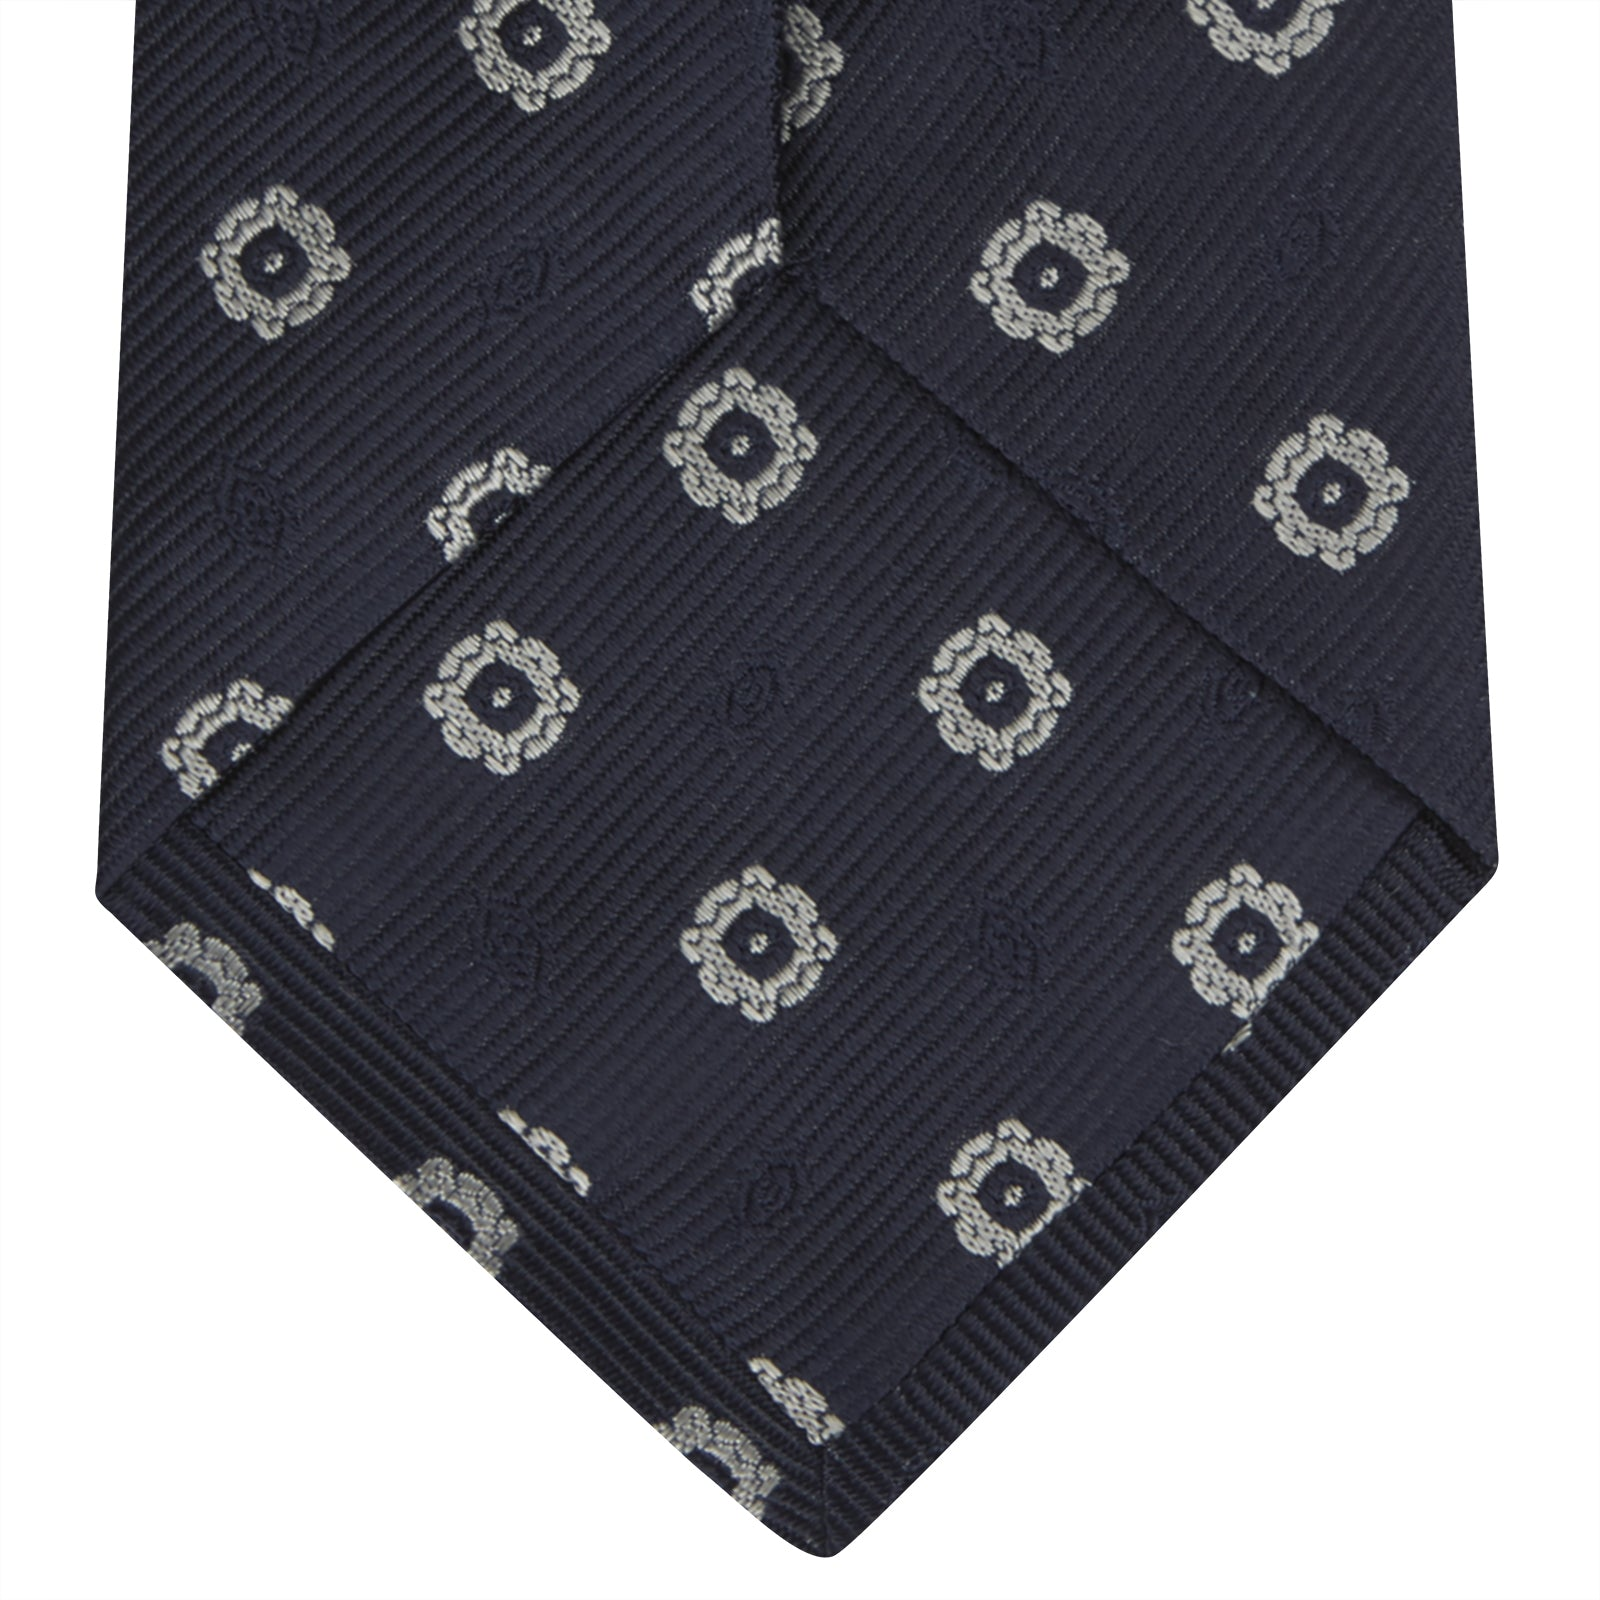 Navy and Silver Emblem Spot Silk Tie